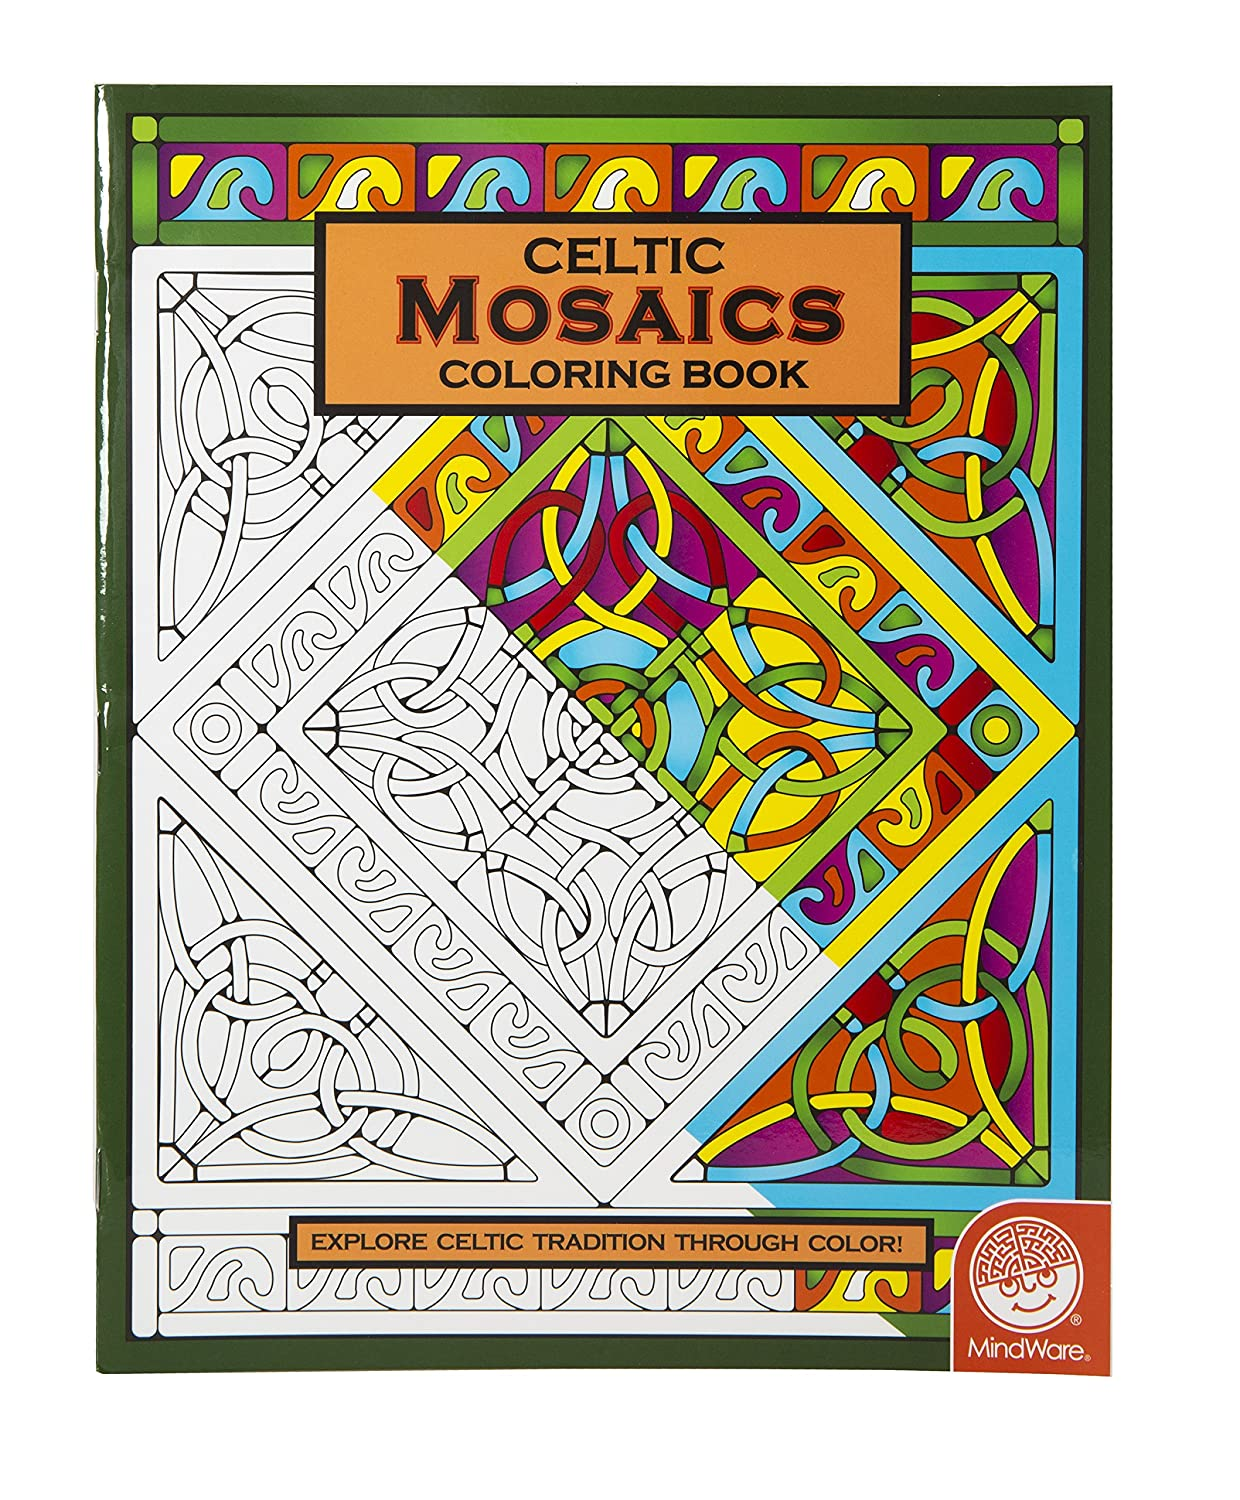 amazoncom mindware celtic mosaic coloring book 23 unique designs teaches creativity and fosters imagination toys games - Mosaic Coloring Book